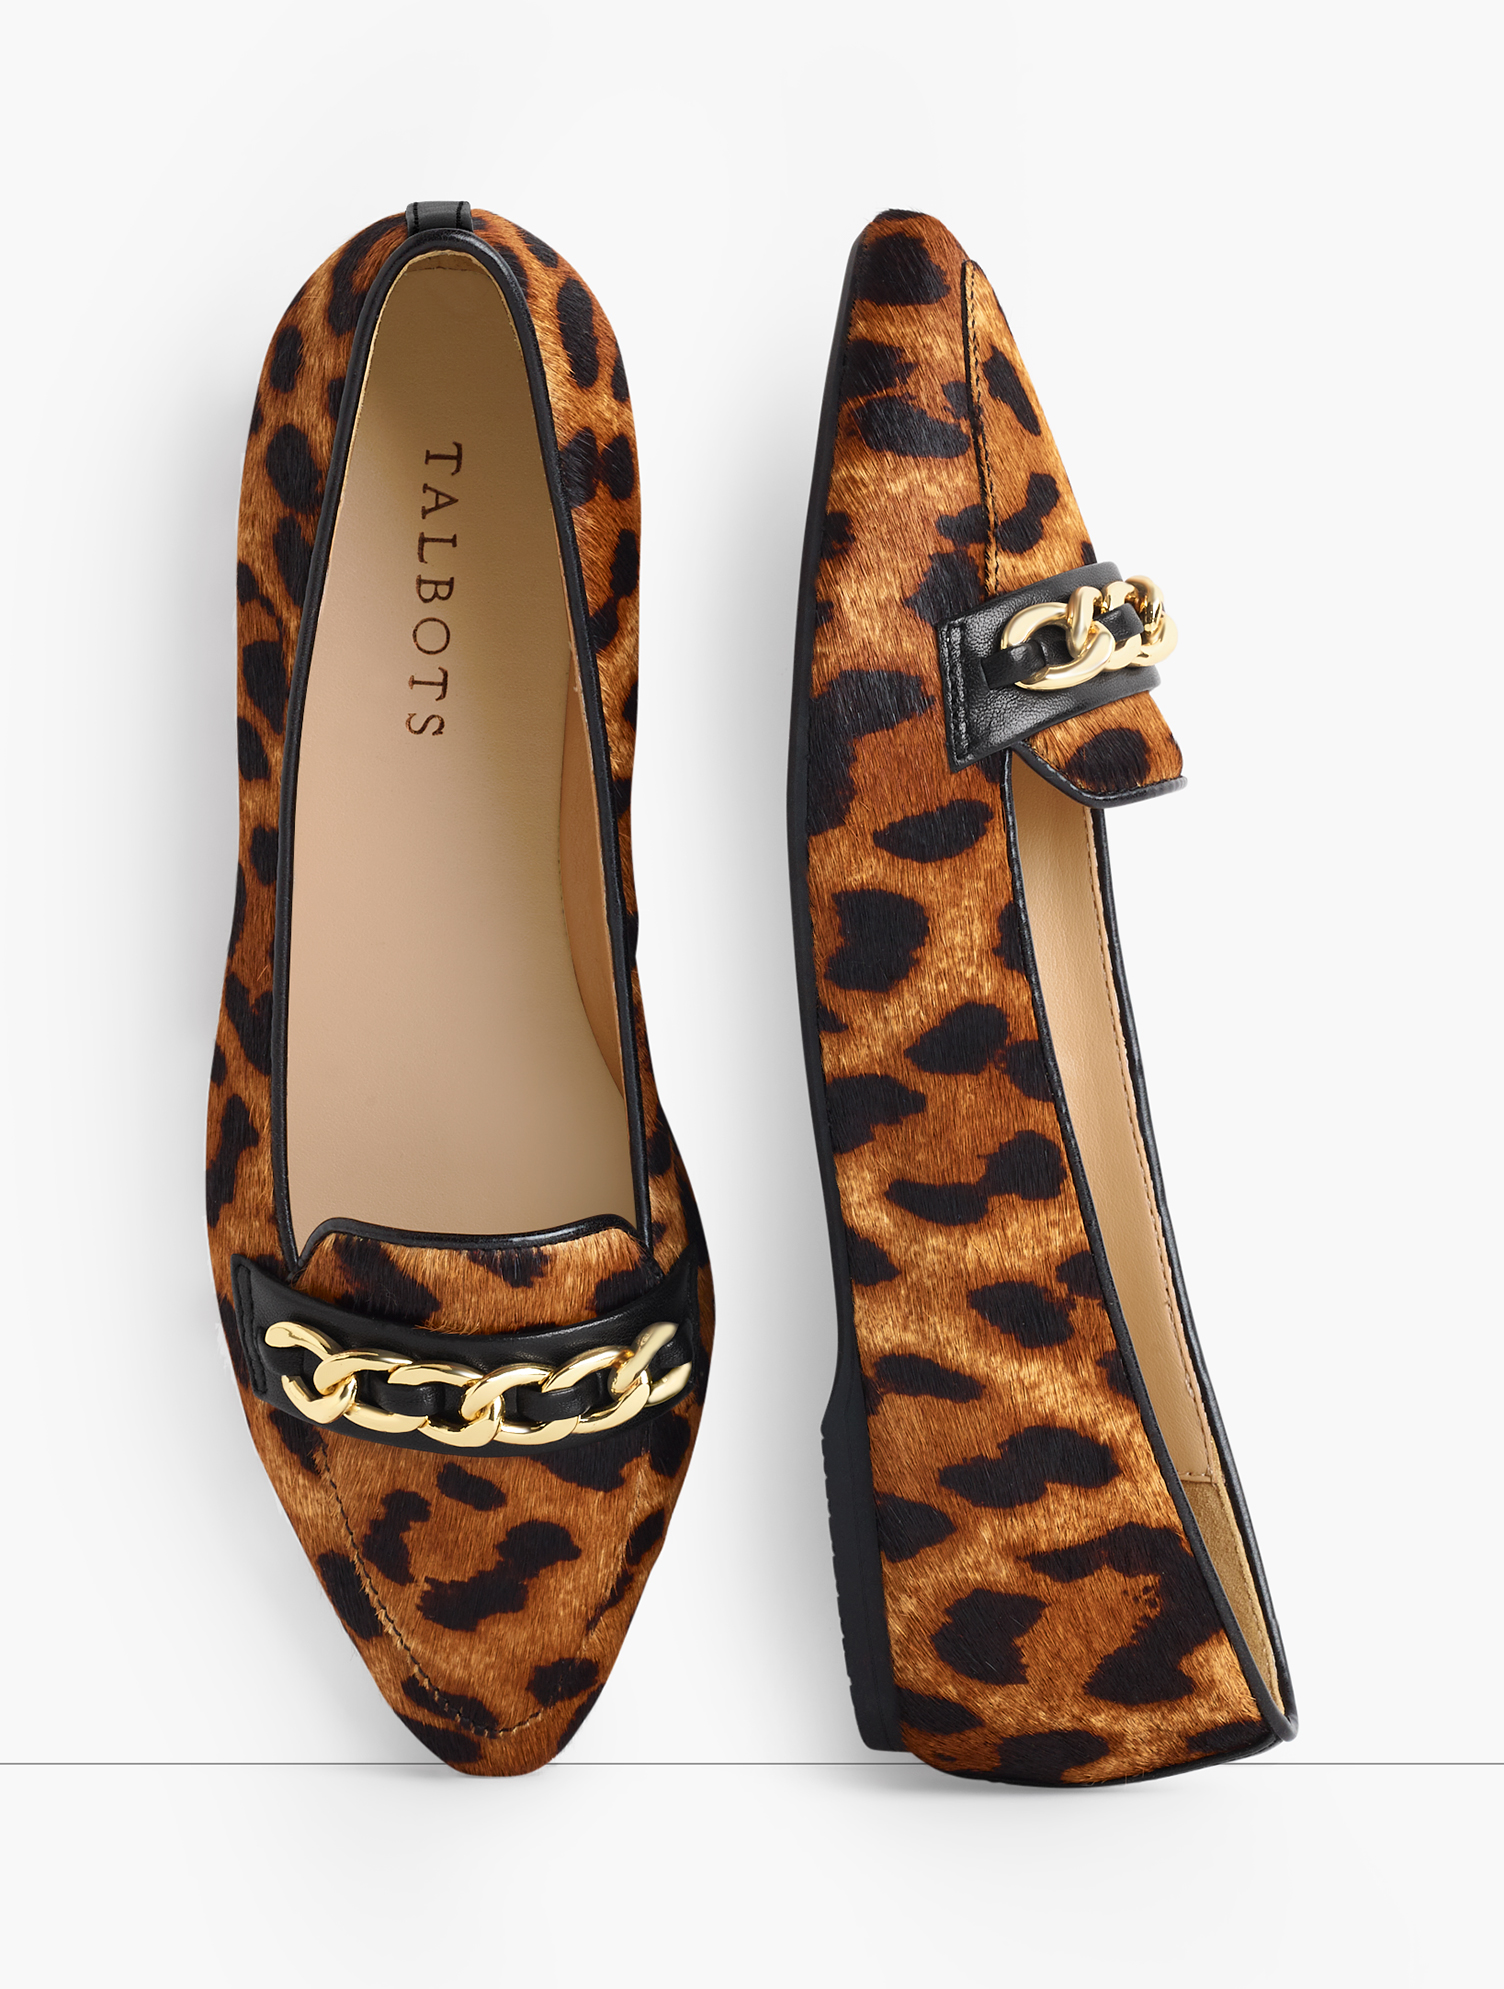 The Lucy. Classic loafers featuring a feminine pointed toe and elegant chain-link detail. In trending calf hair. Features Gift Box/Gift Wrap is not available for this item Gum sole Flat heel Pointed toe Chain Detail Imported Material: 100% Leather Lucy Chain Link Loafers - Calf Hair - Classic Leopard - 8-1/2M Talbots